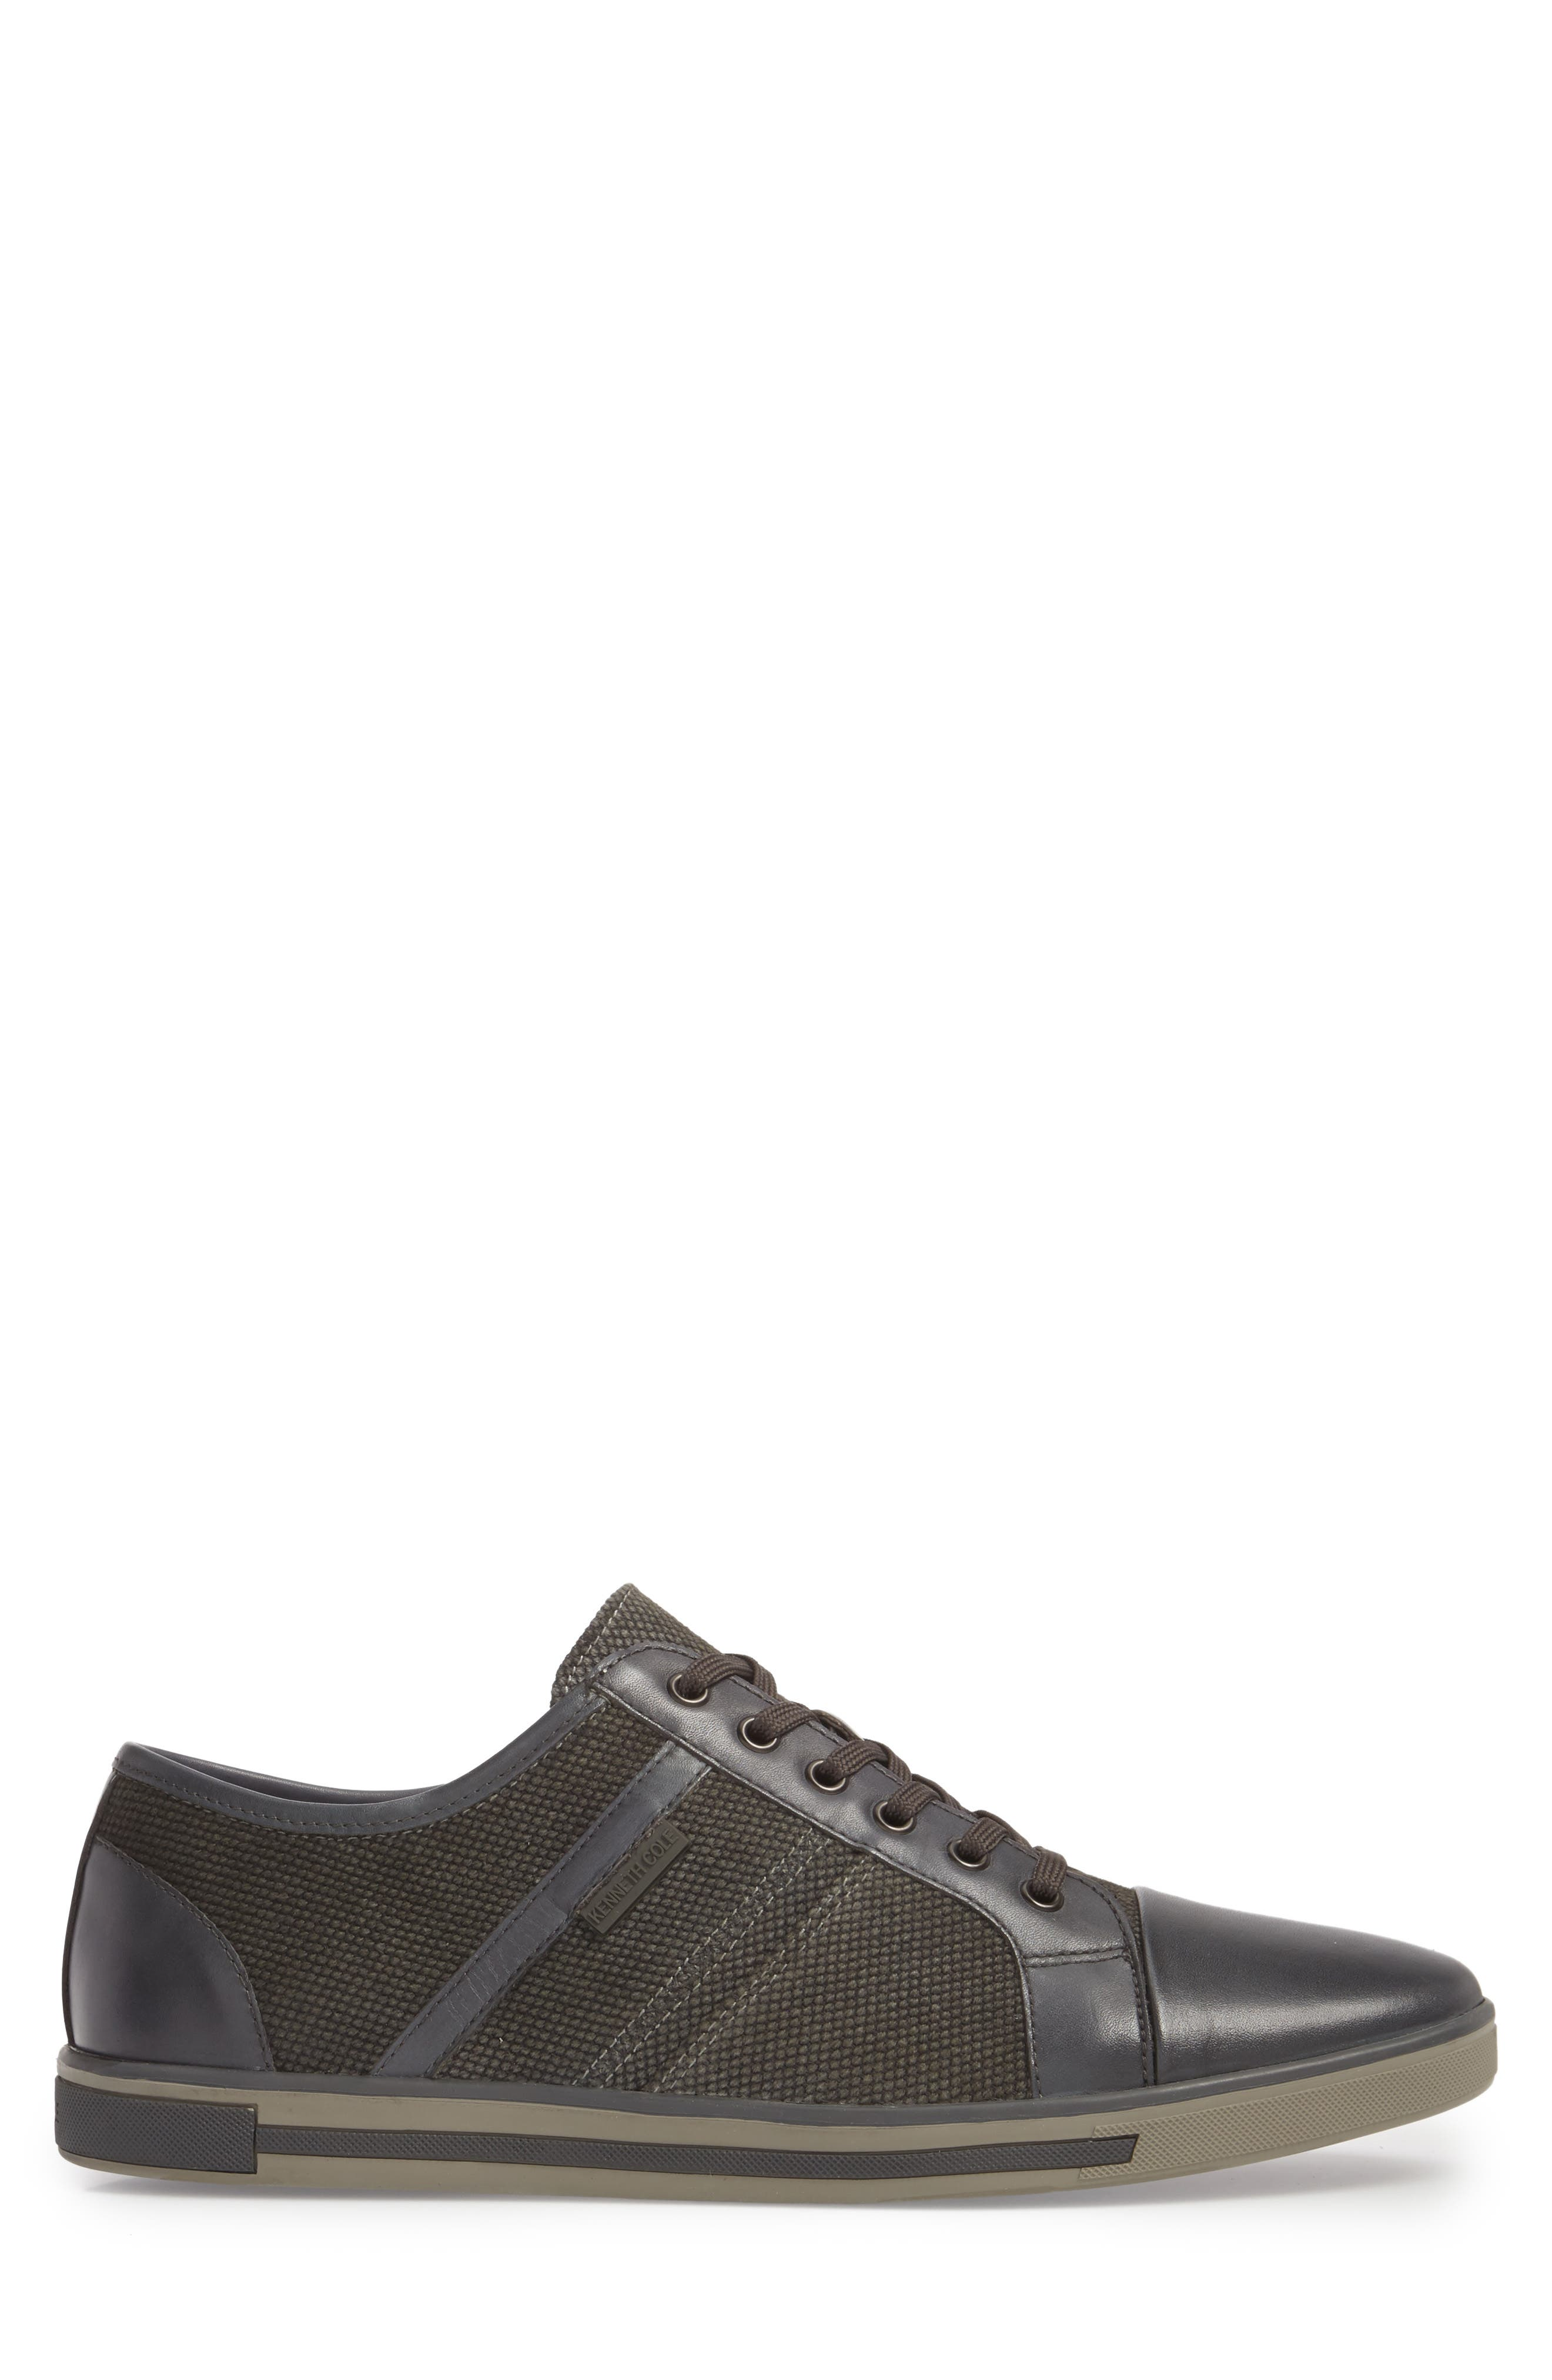 Initial Step Sneaker,                             Alternate thumbnail 3, color,                             Grey Leather/ Textile